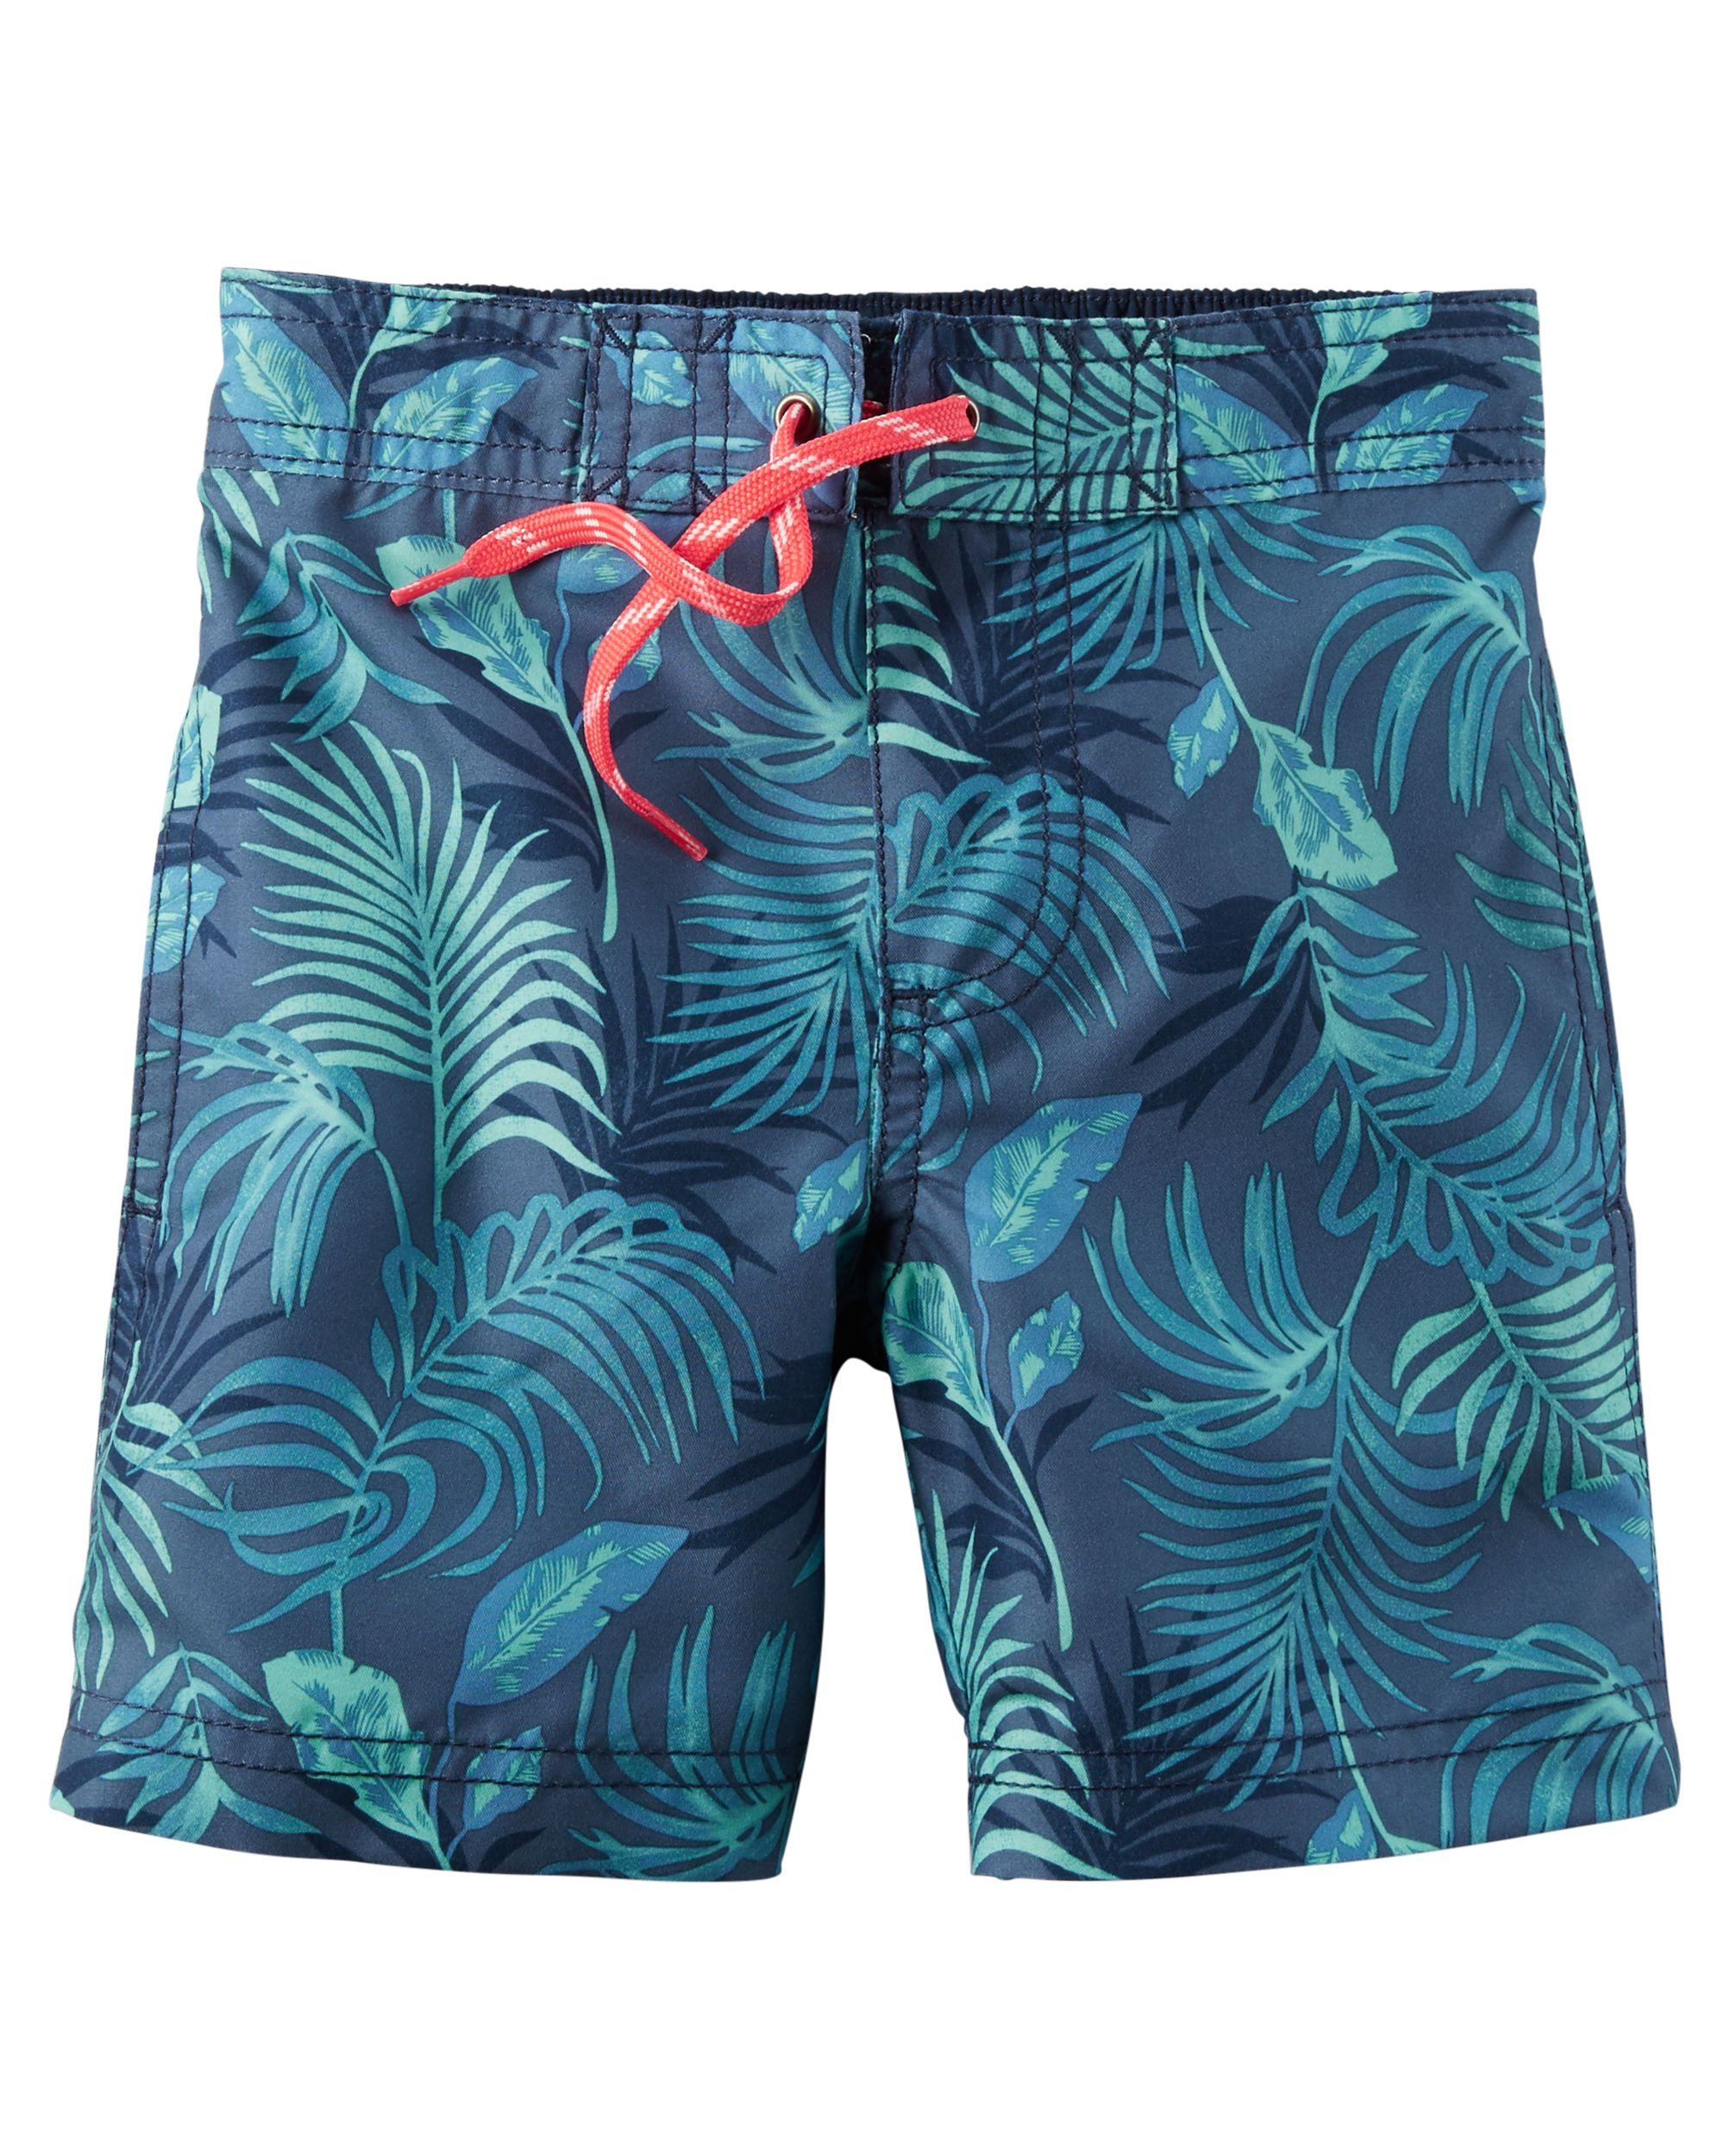 87c17863d6 Toddler Boy Tropical Print Swim Trunks | Carter's OshKosh Canada ...